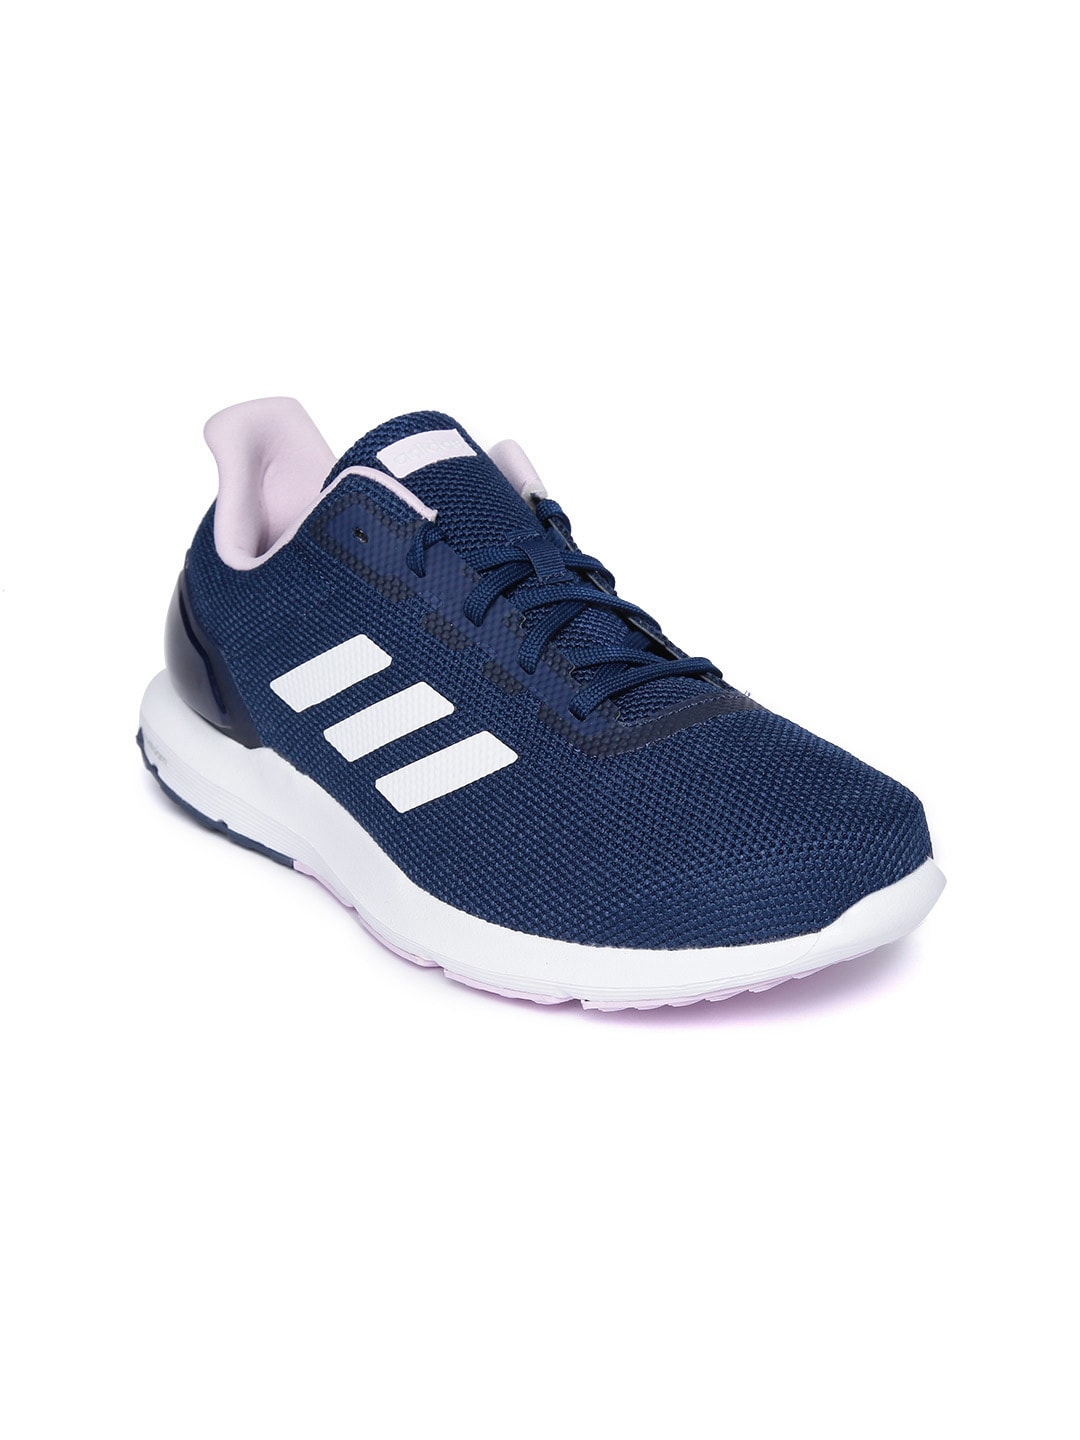 879d50d1ead62e Adidas Blue Shoes - Buy Adidas Blue Shoes Online in India